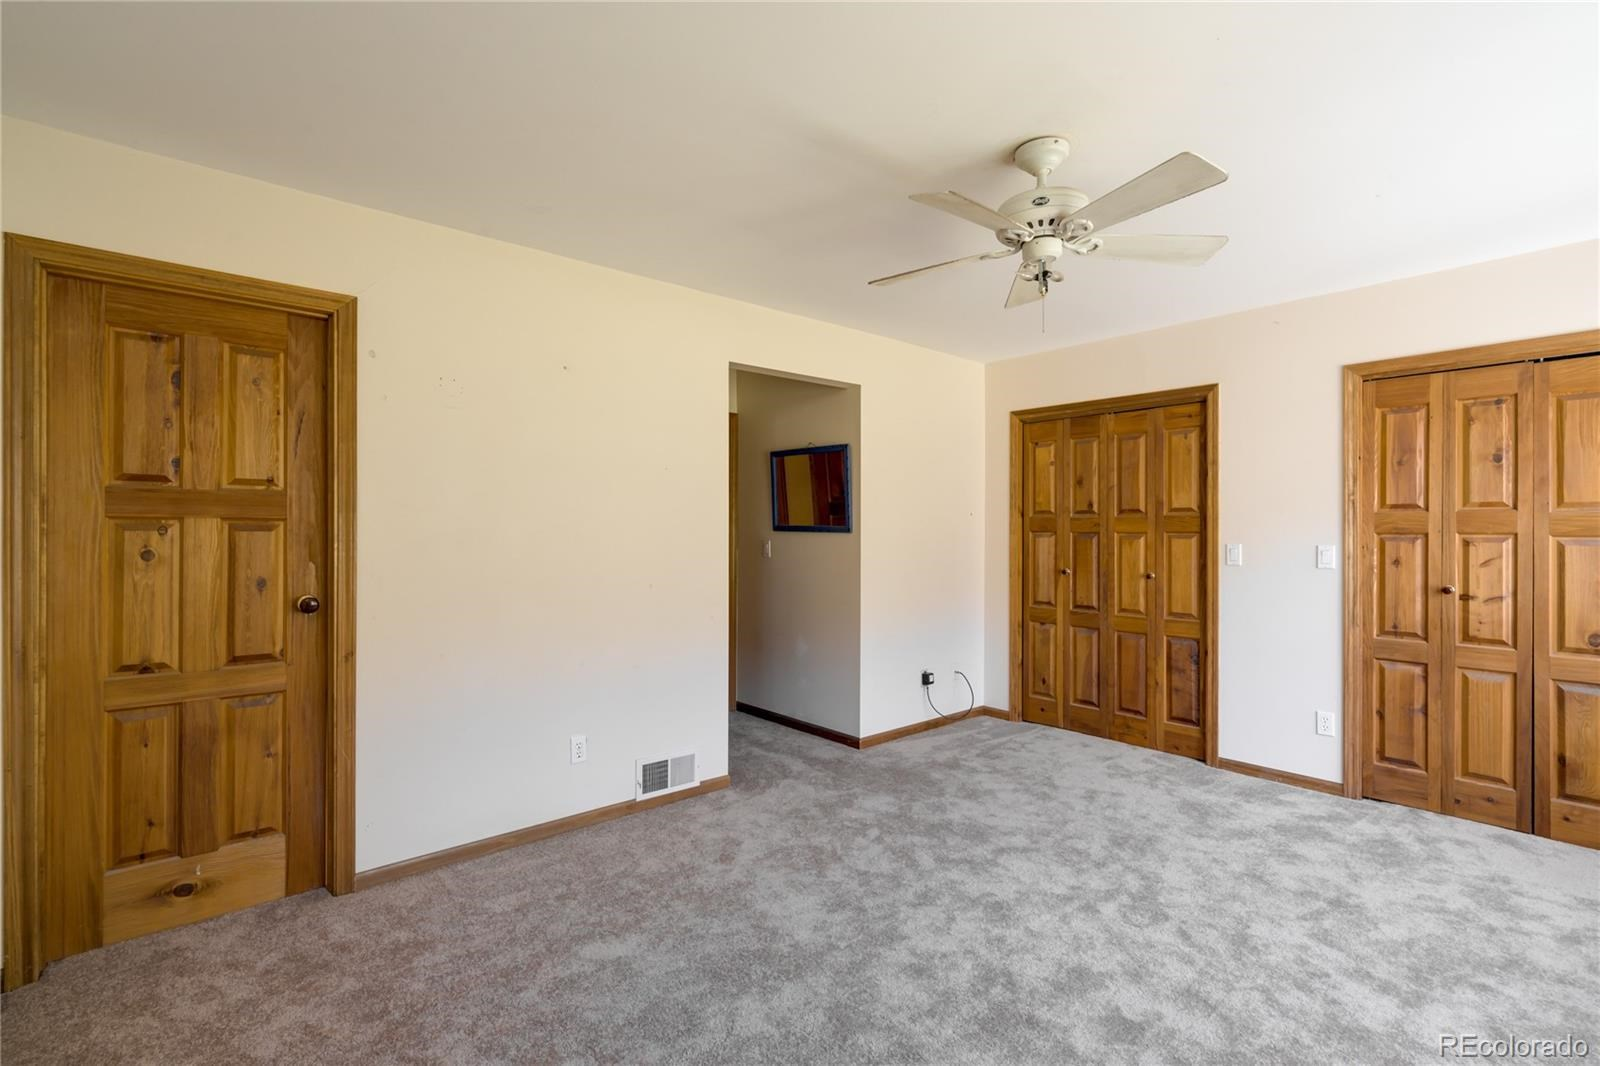 MLS# 3817598 - 10 - 404 Lupine Drive, Steamboat Springs, CO 80487